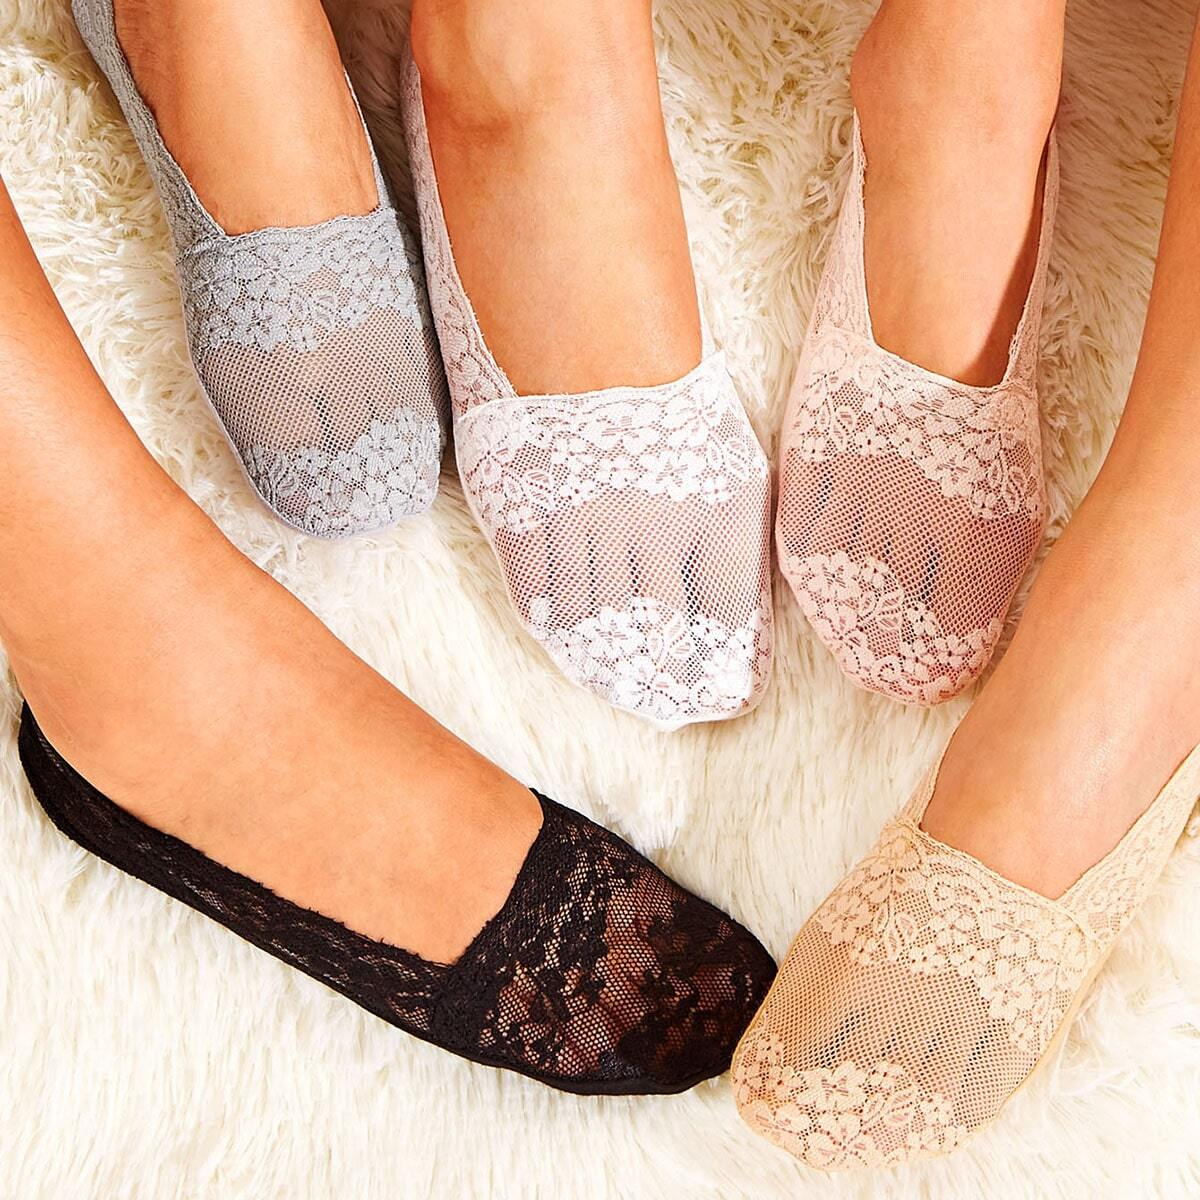 SHEIN coupon: Solid Lace Invisible Socks 5pairs